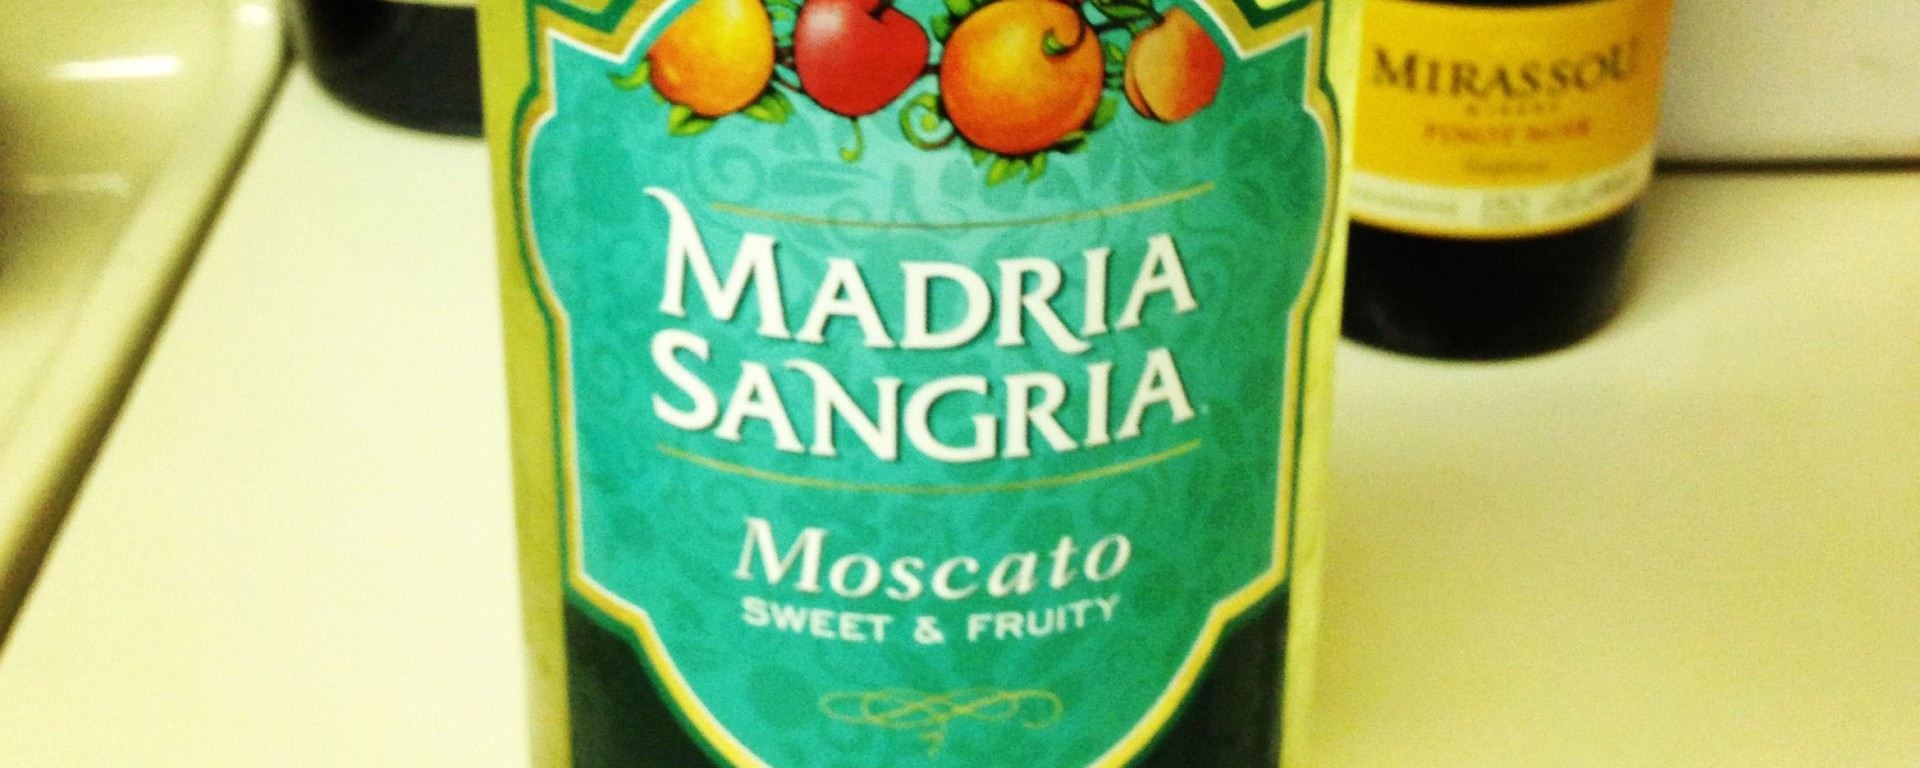 Madria Sangria bottle